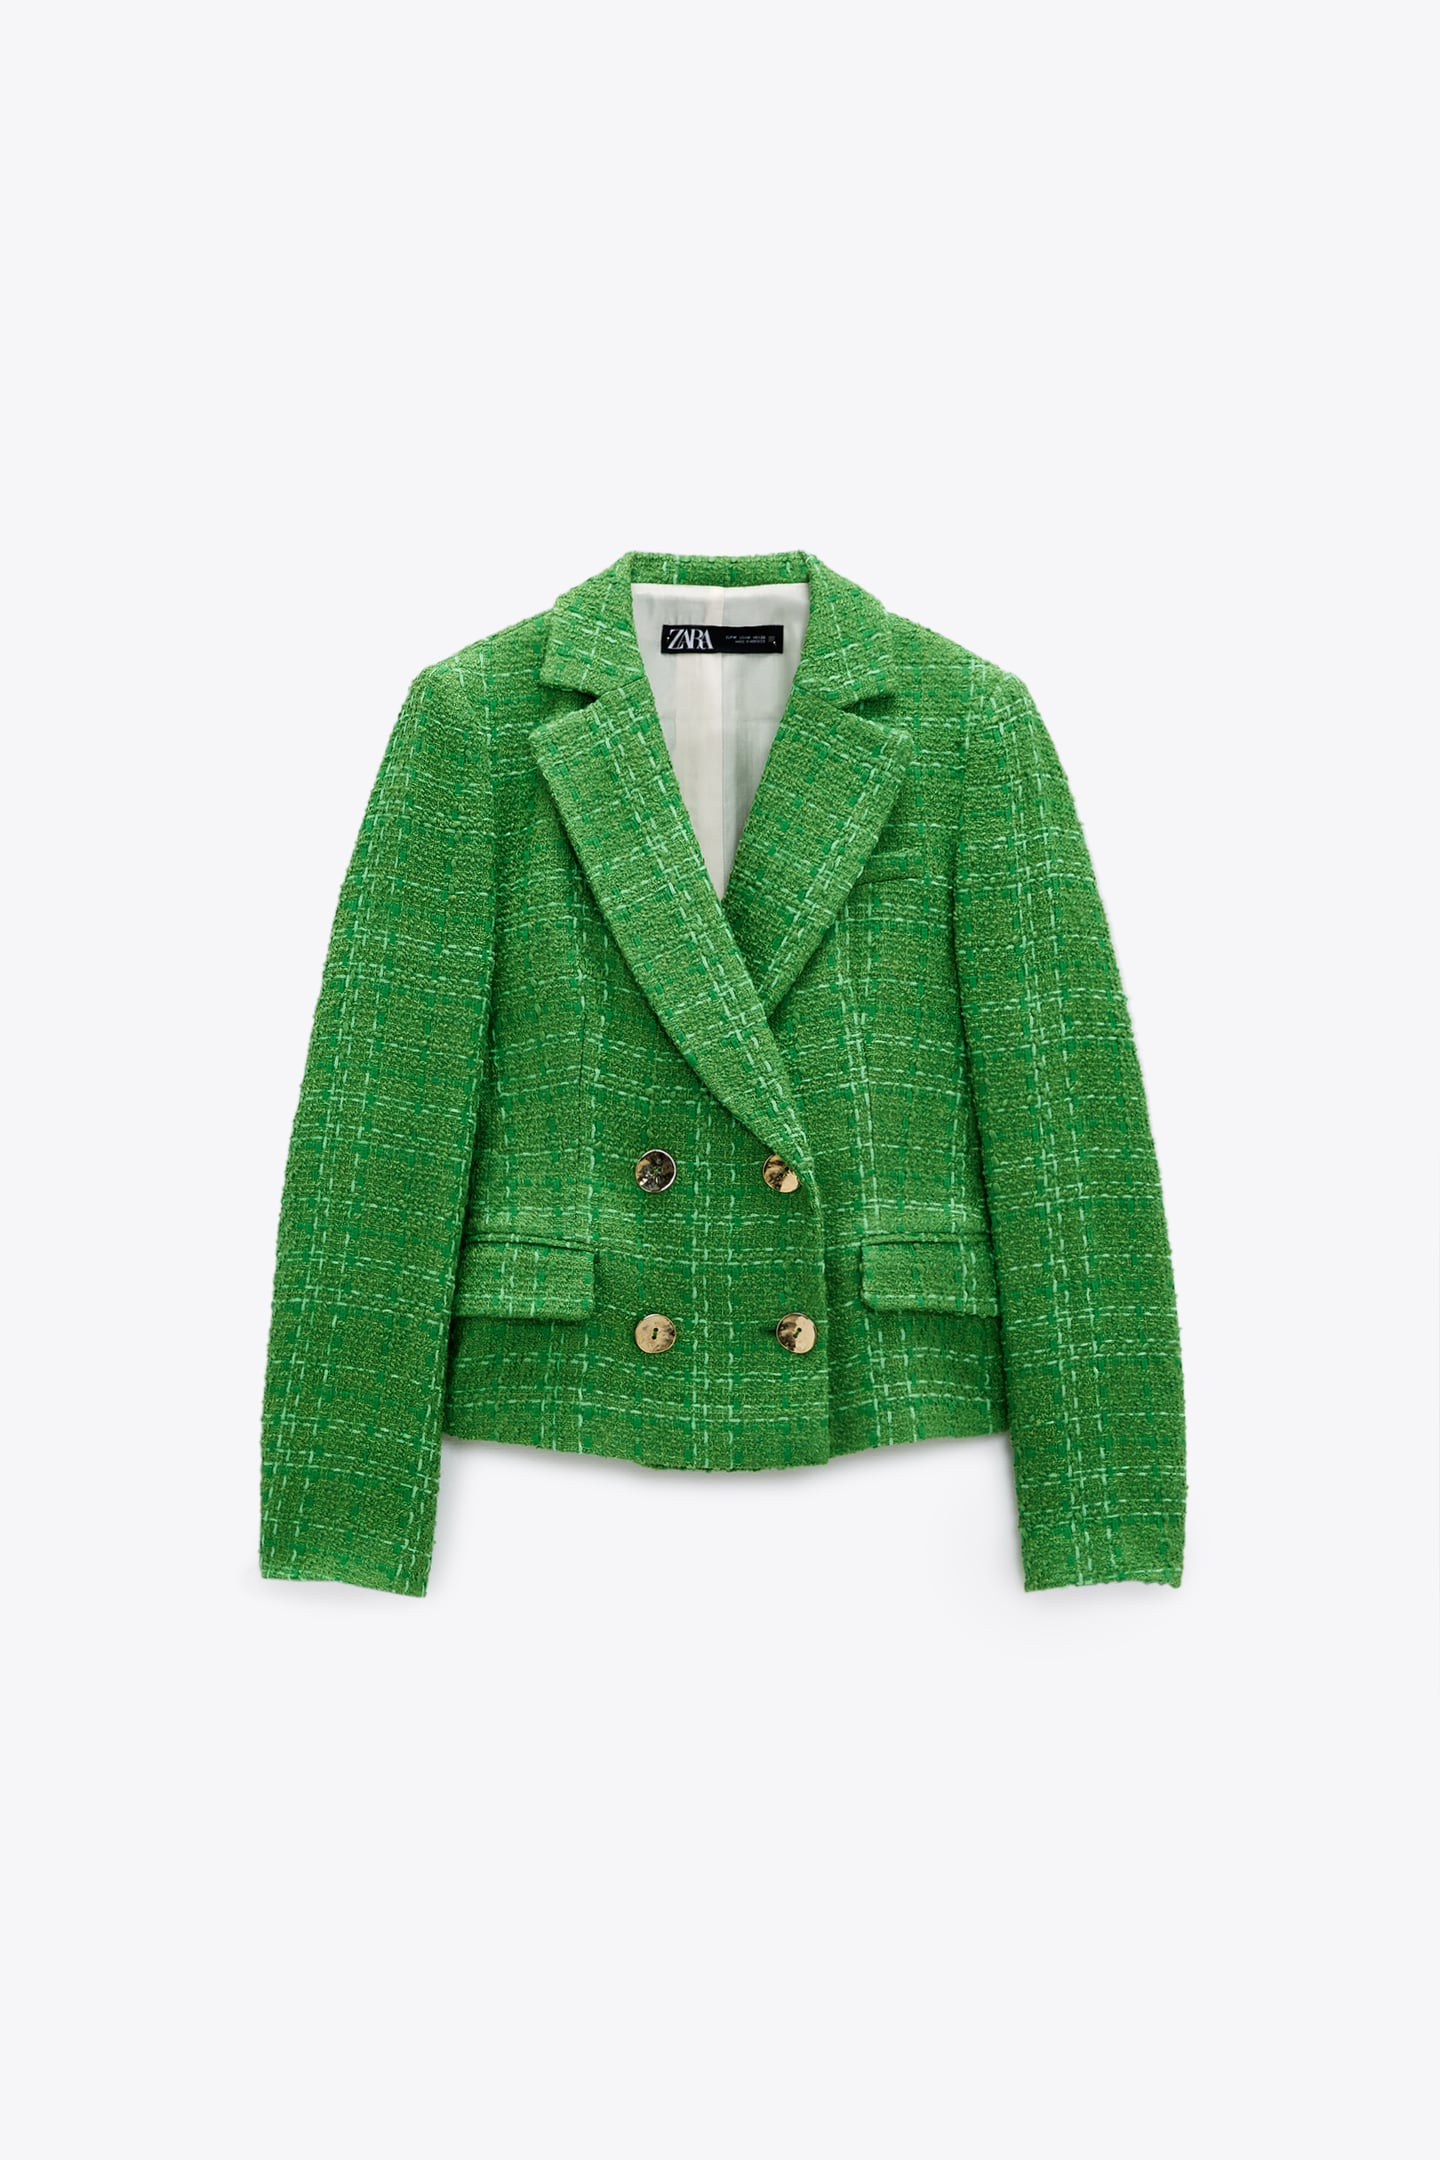 TEXTURED DOUBLE-BREASTED BLAZER from Zara